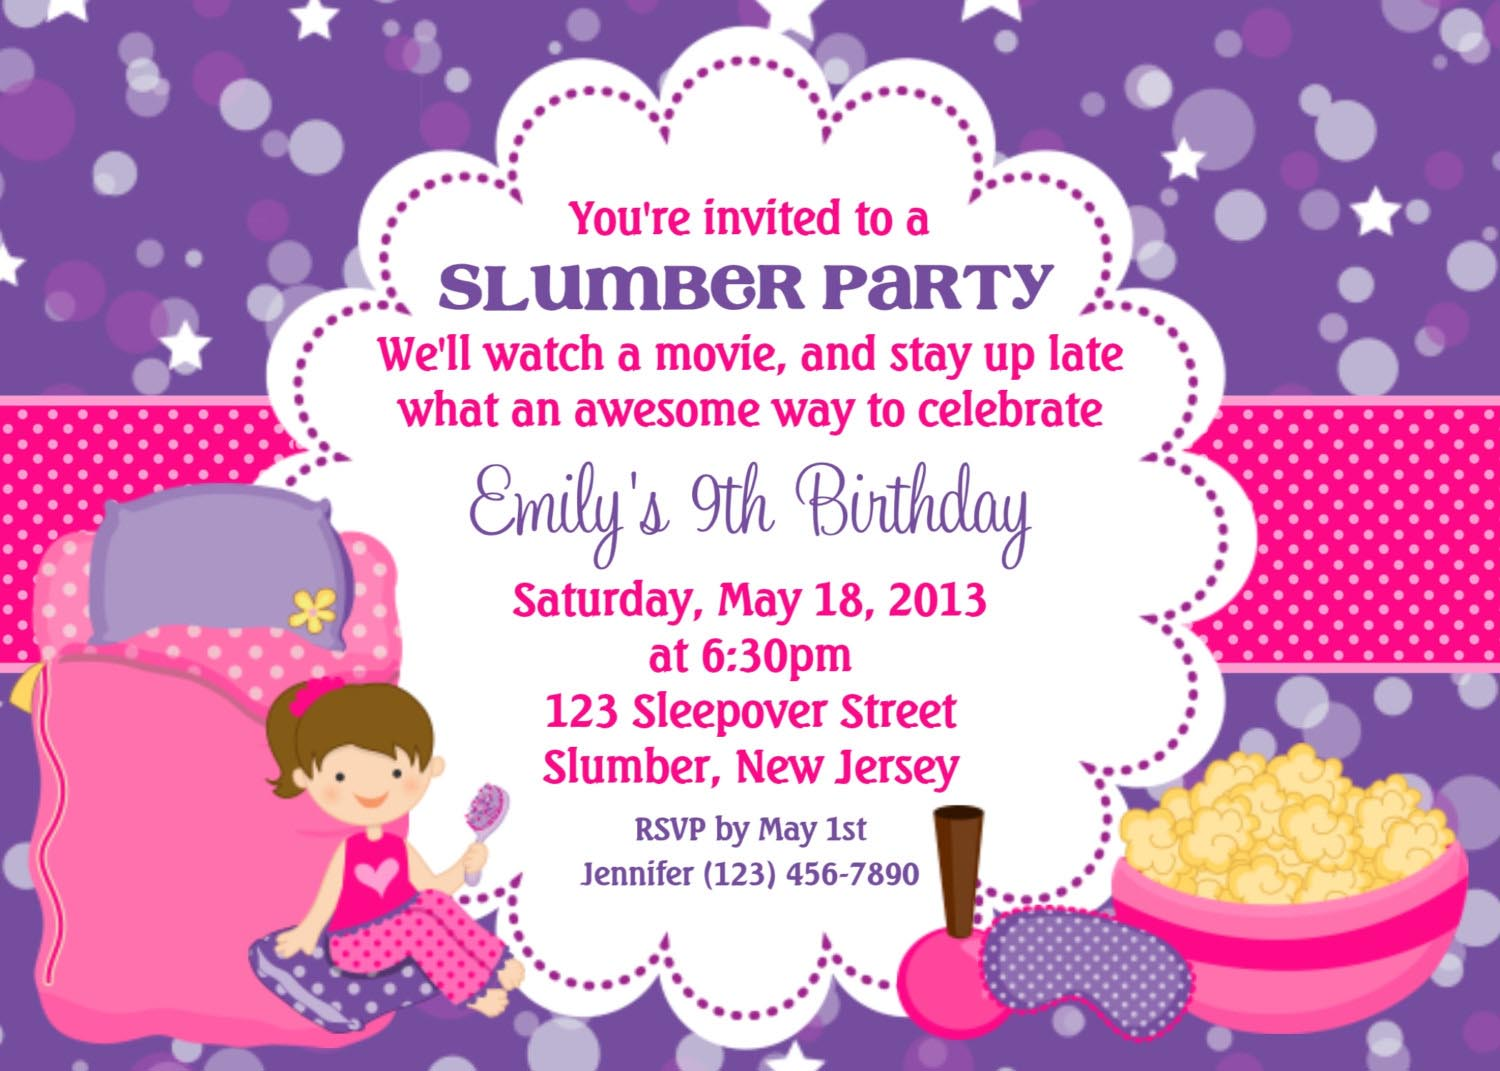 Spa party invitations templates free home party ideas spa party invitations templates free stopboris